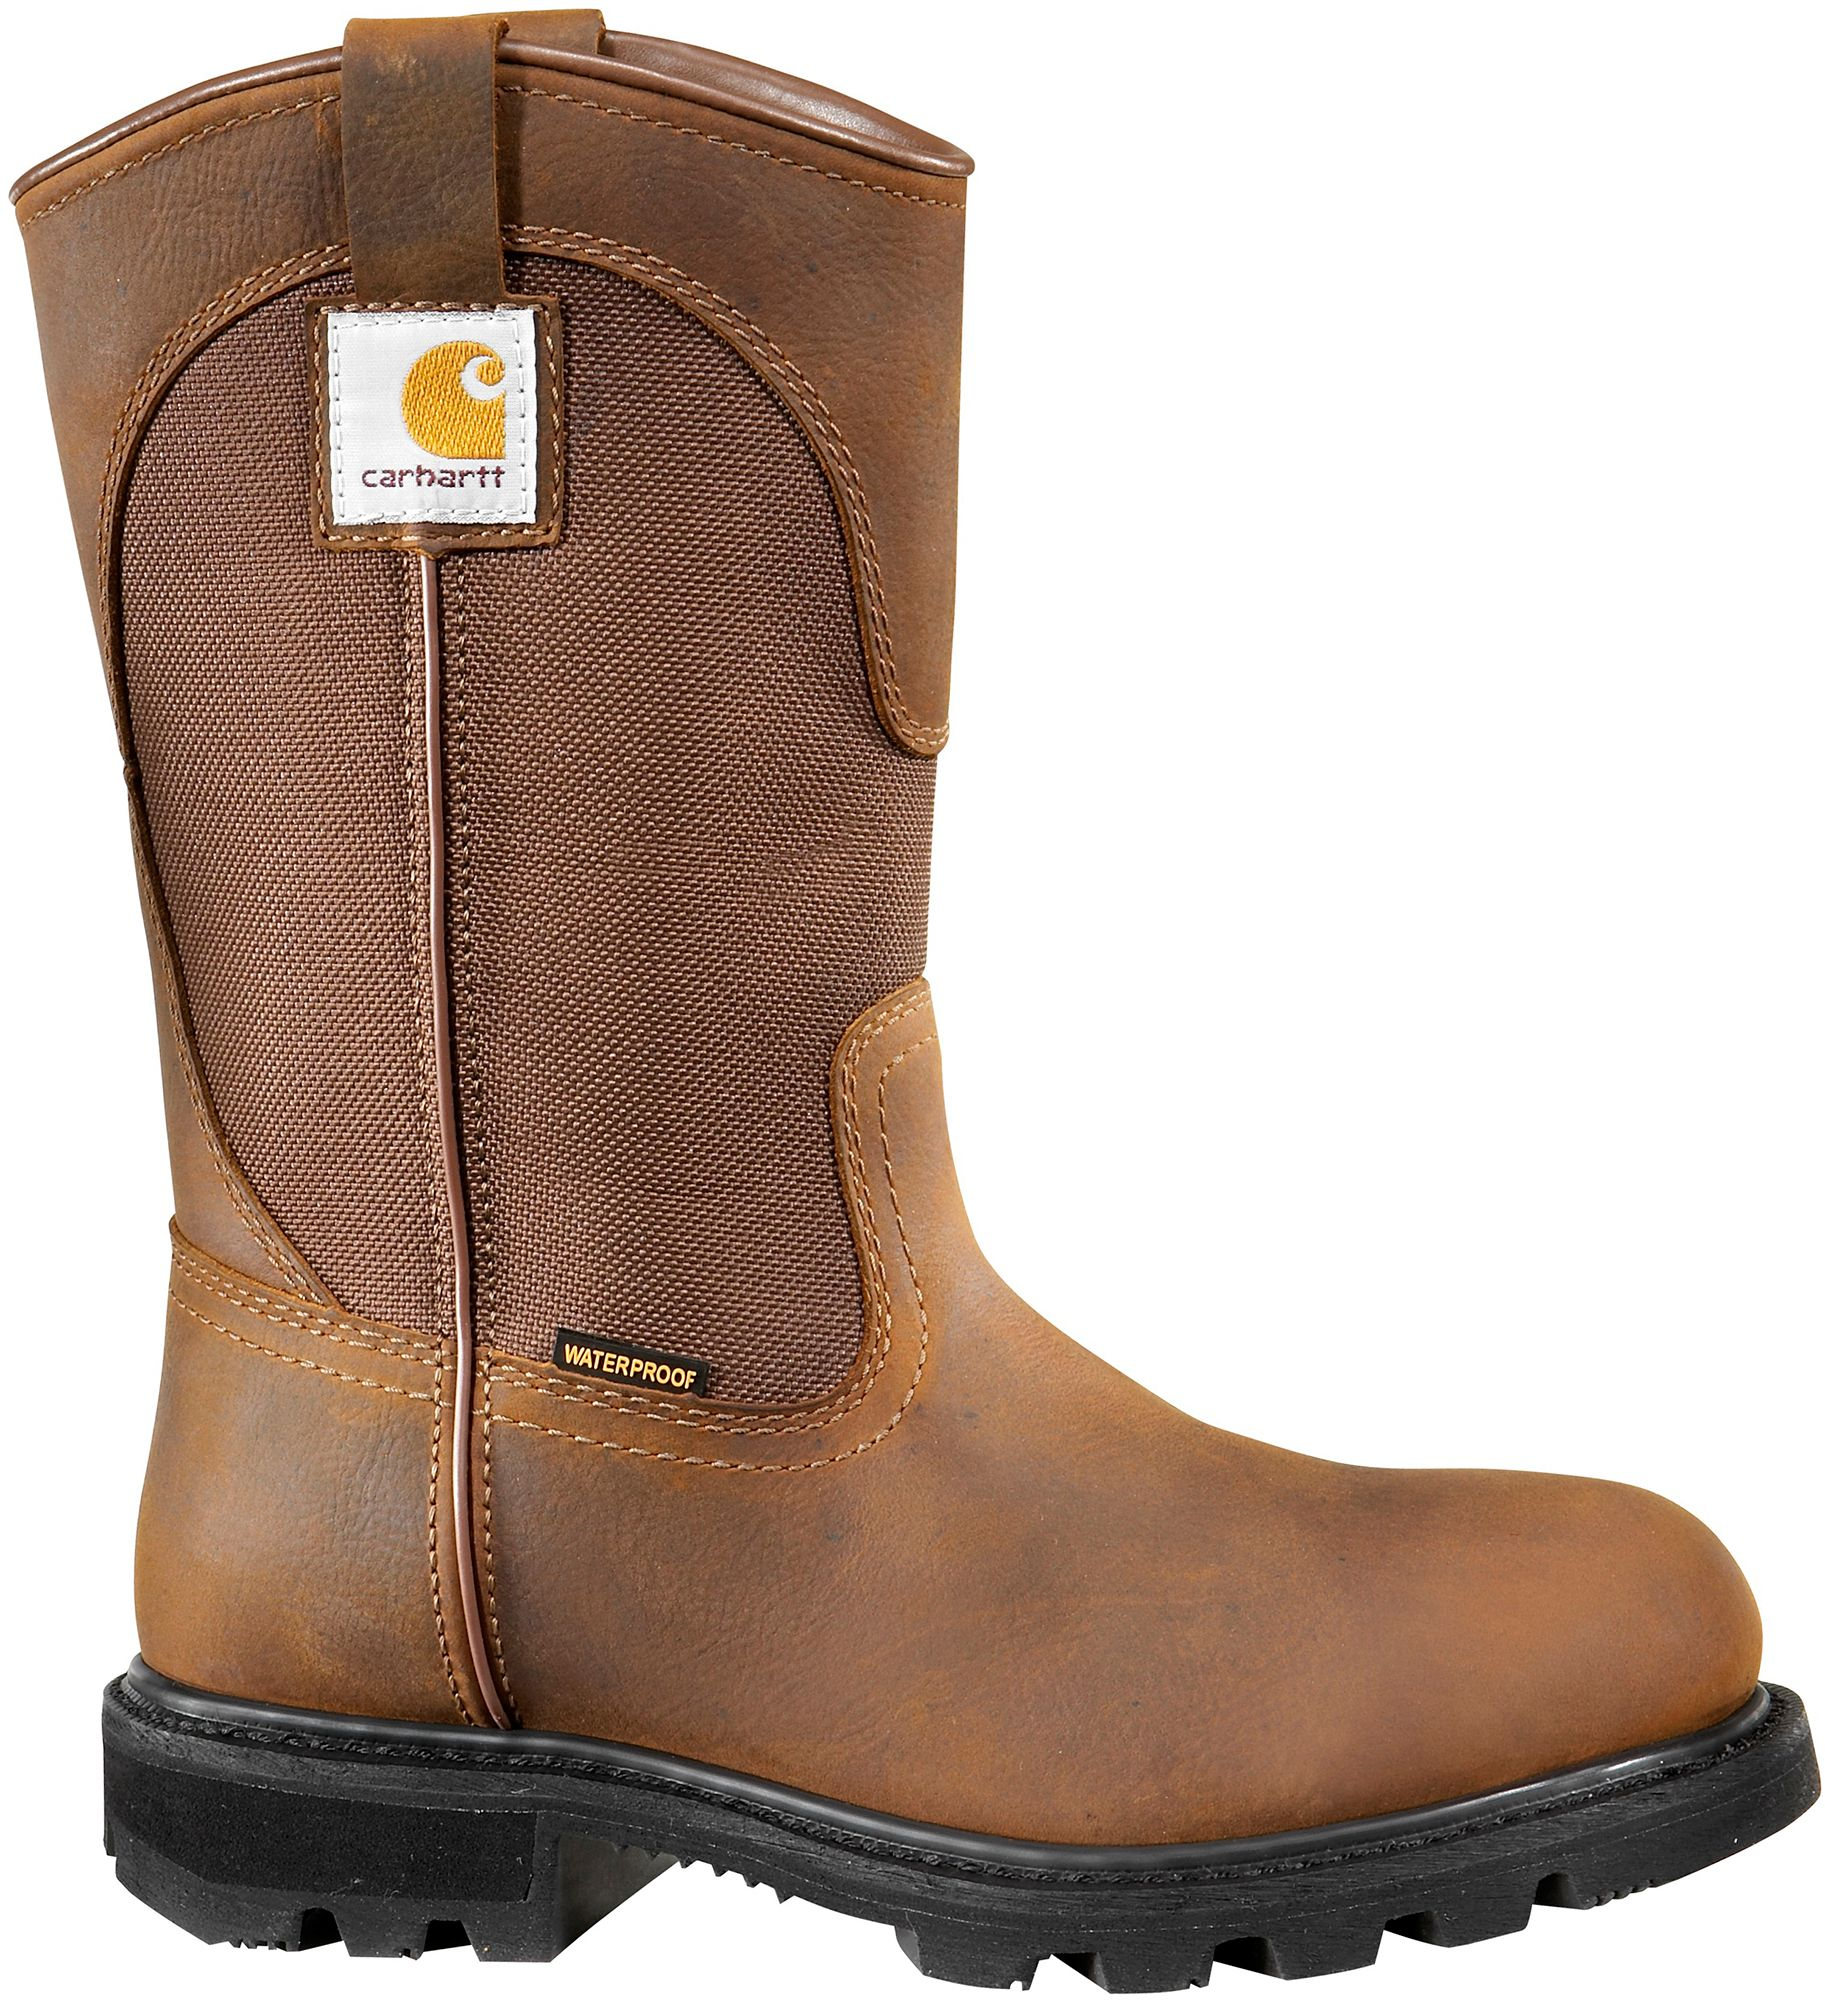 Carhartt Women's Wellington 10'' Waterproof Steel Toe Work Boots ...